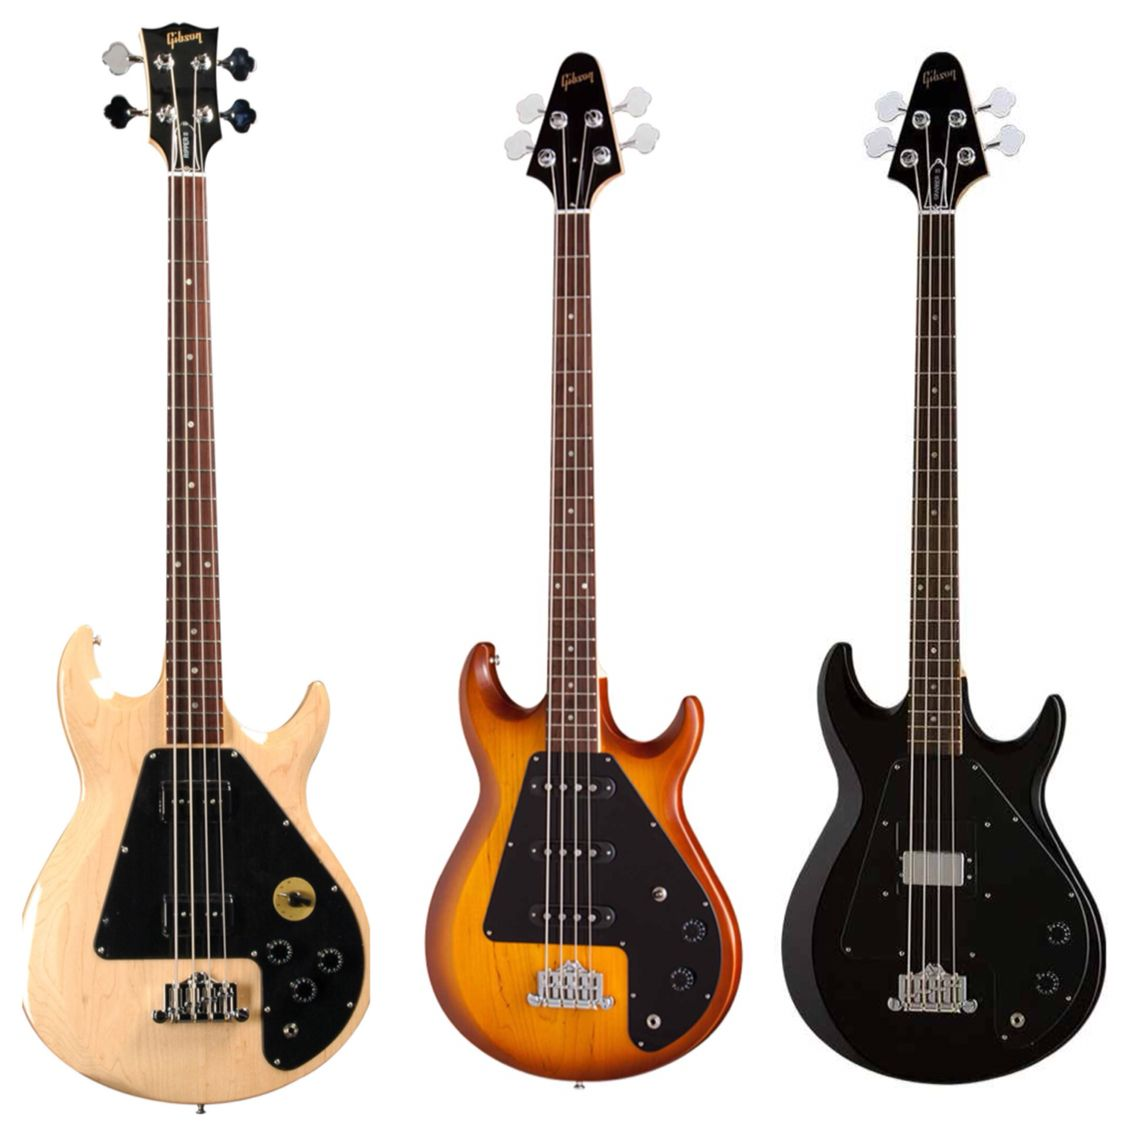 reissue gibson basses the ripper2 the 70s tribute the grabber2 guitar basses and pickups. Black Bedroom Furniture Sets. Home Design Ideas